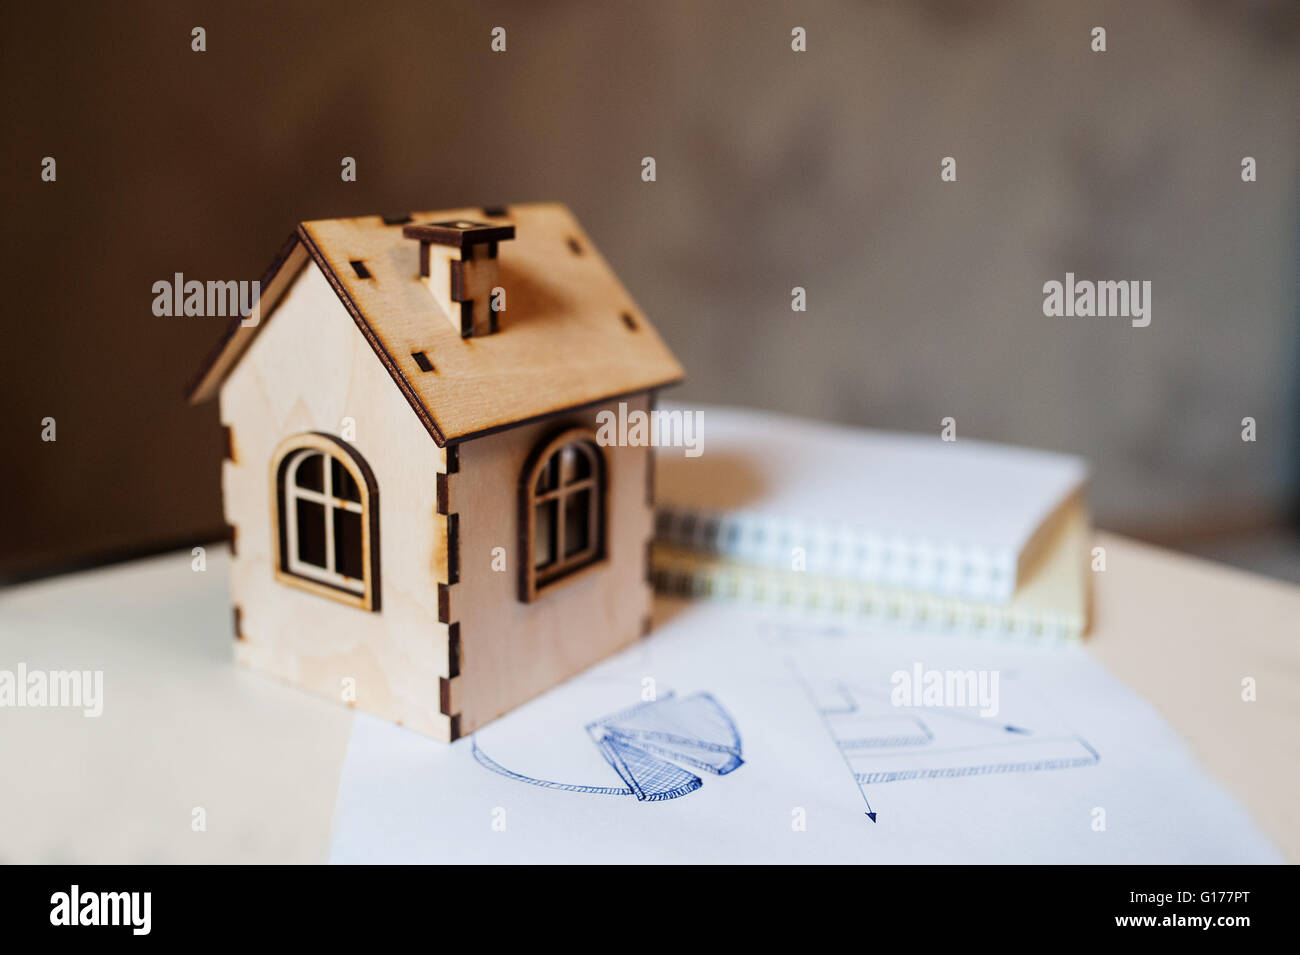 Real estate concept wooden toy house with paper diagram - Stock Image